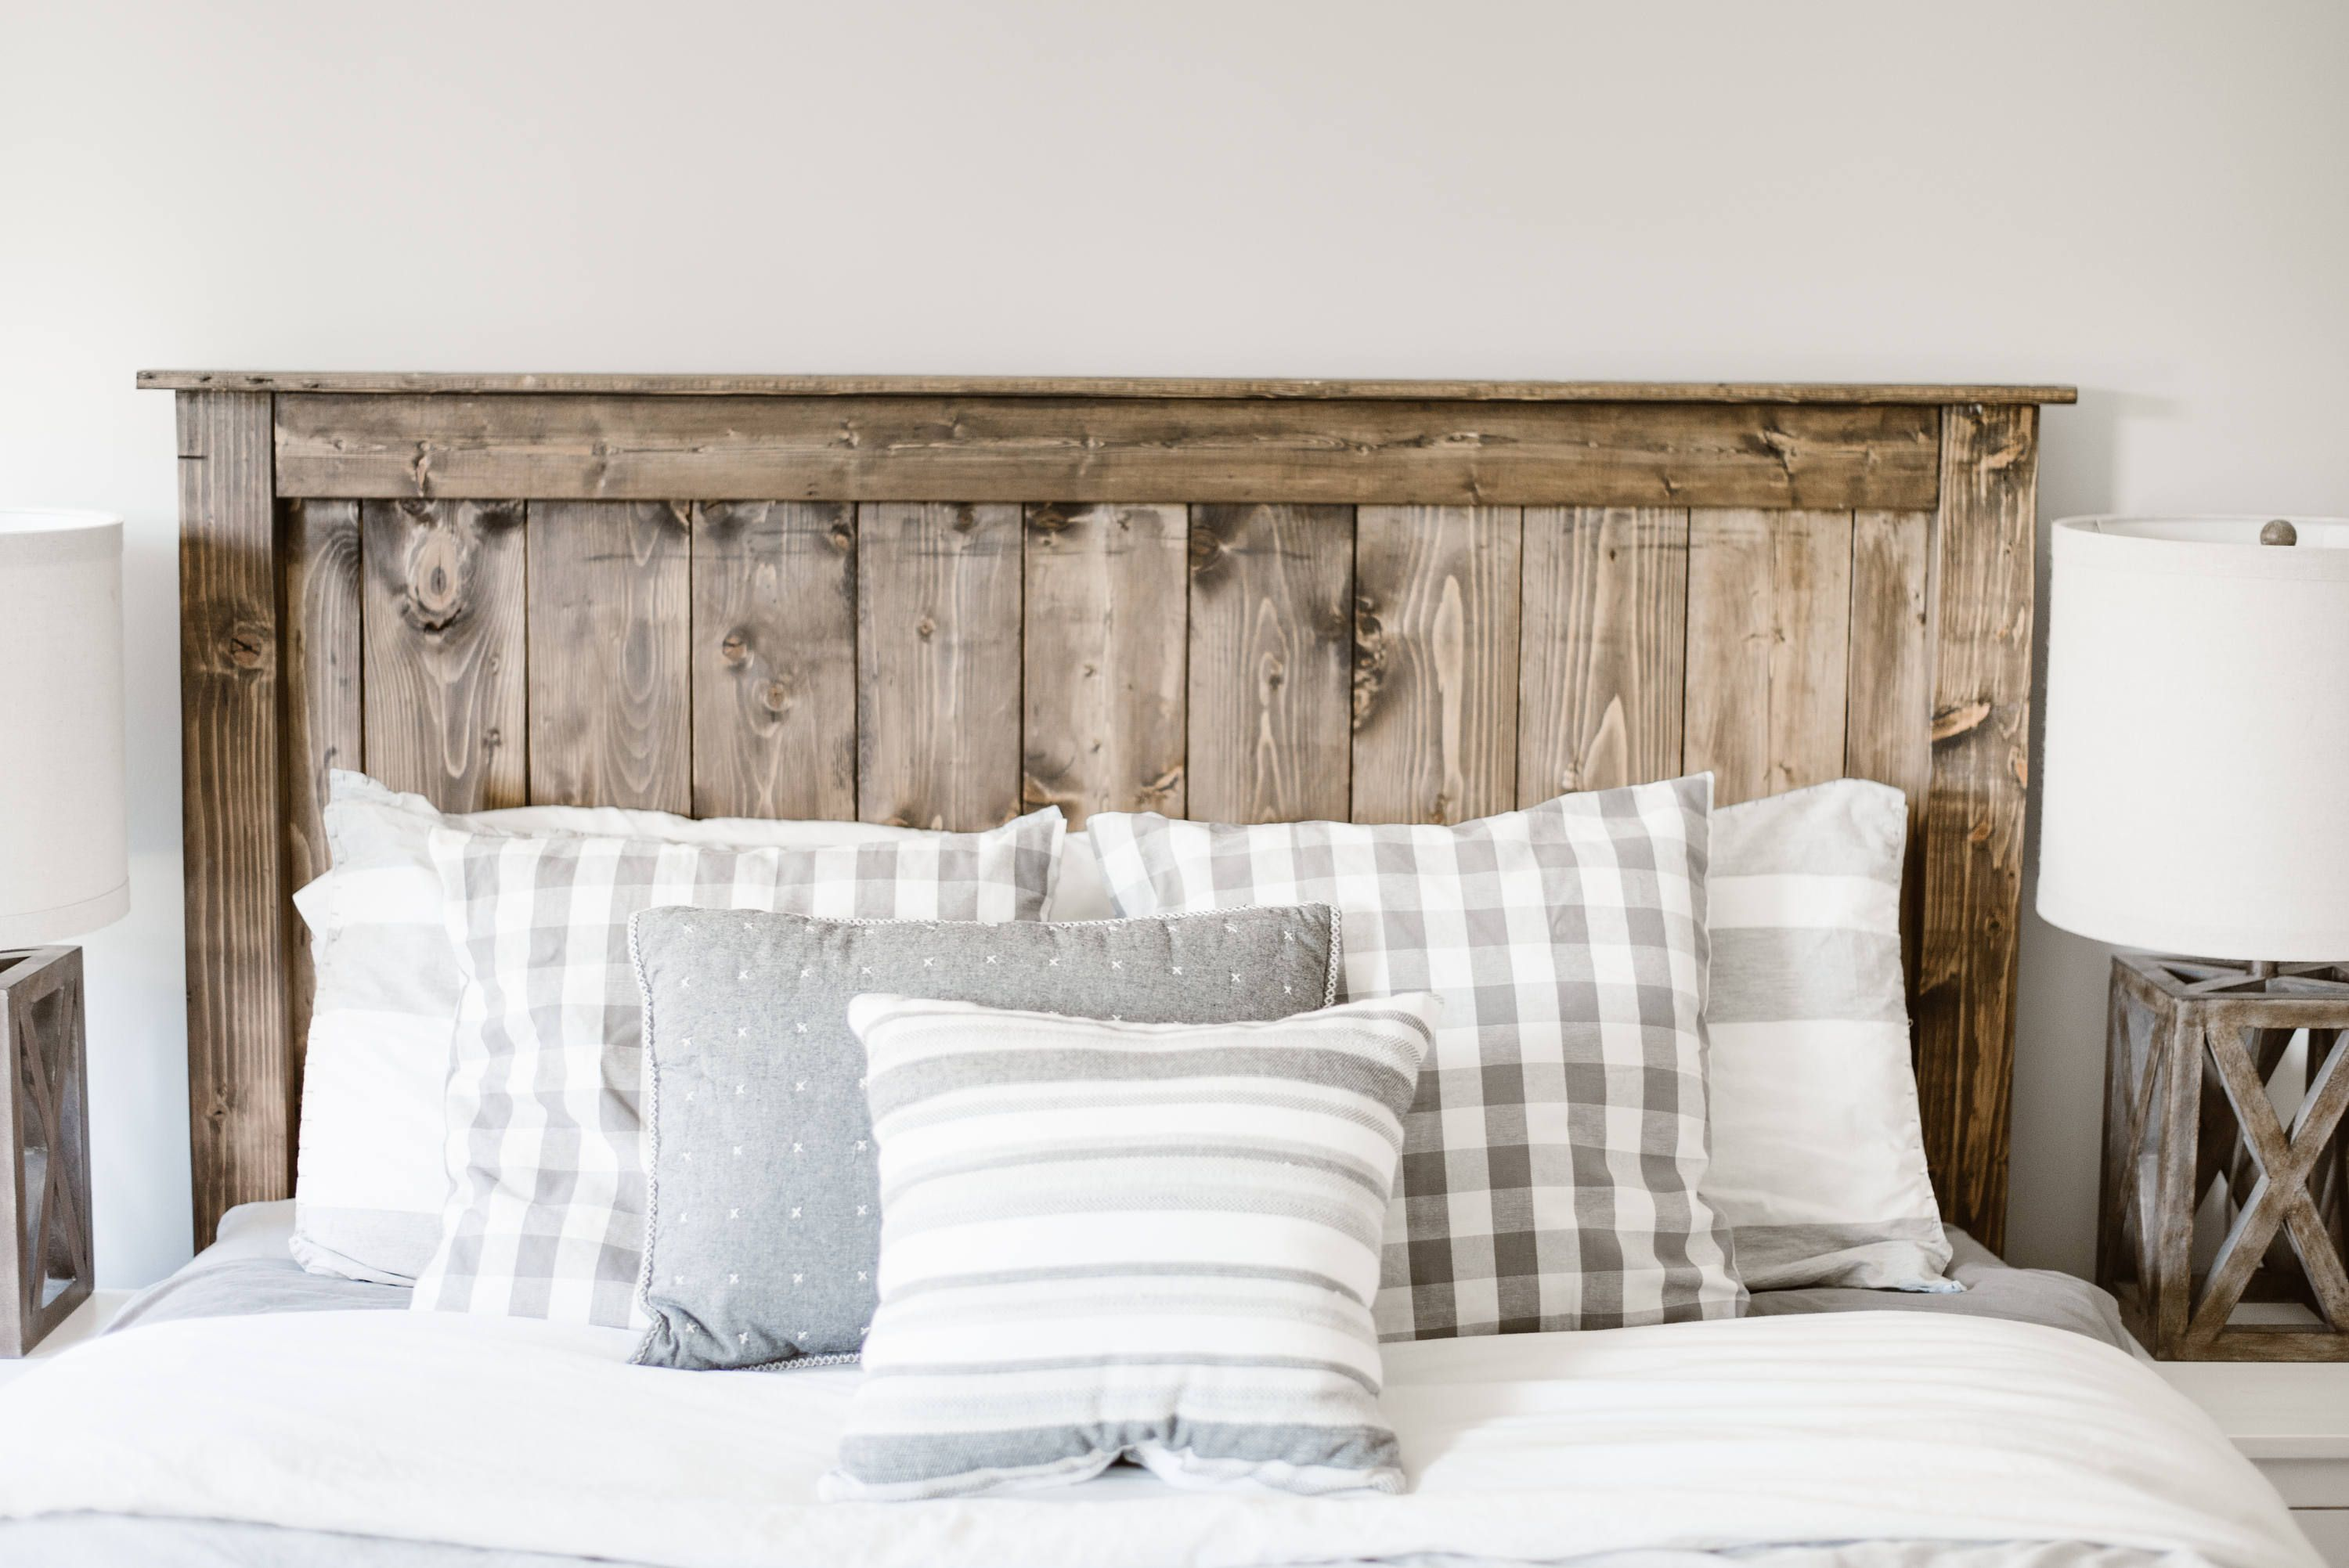 The Simple Farmhouse Wooden Headboard **LOCAL CUSTOMERS ONLY**